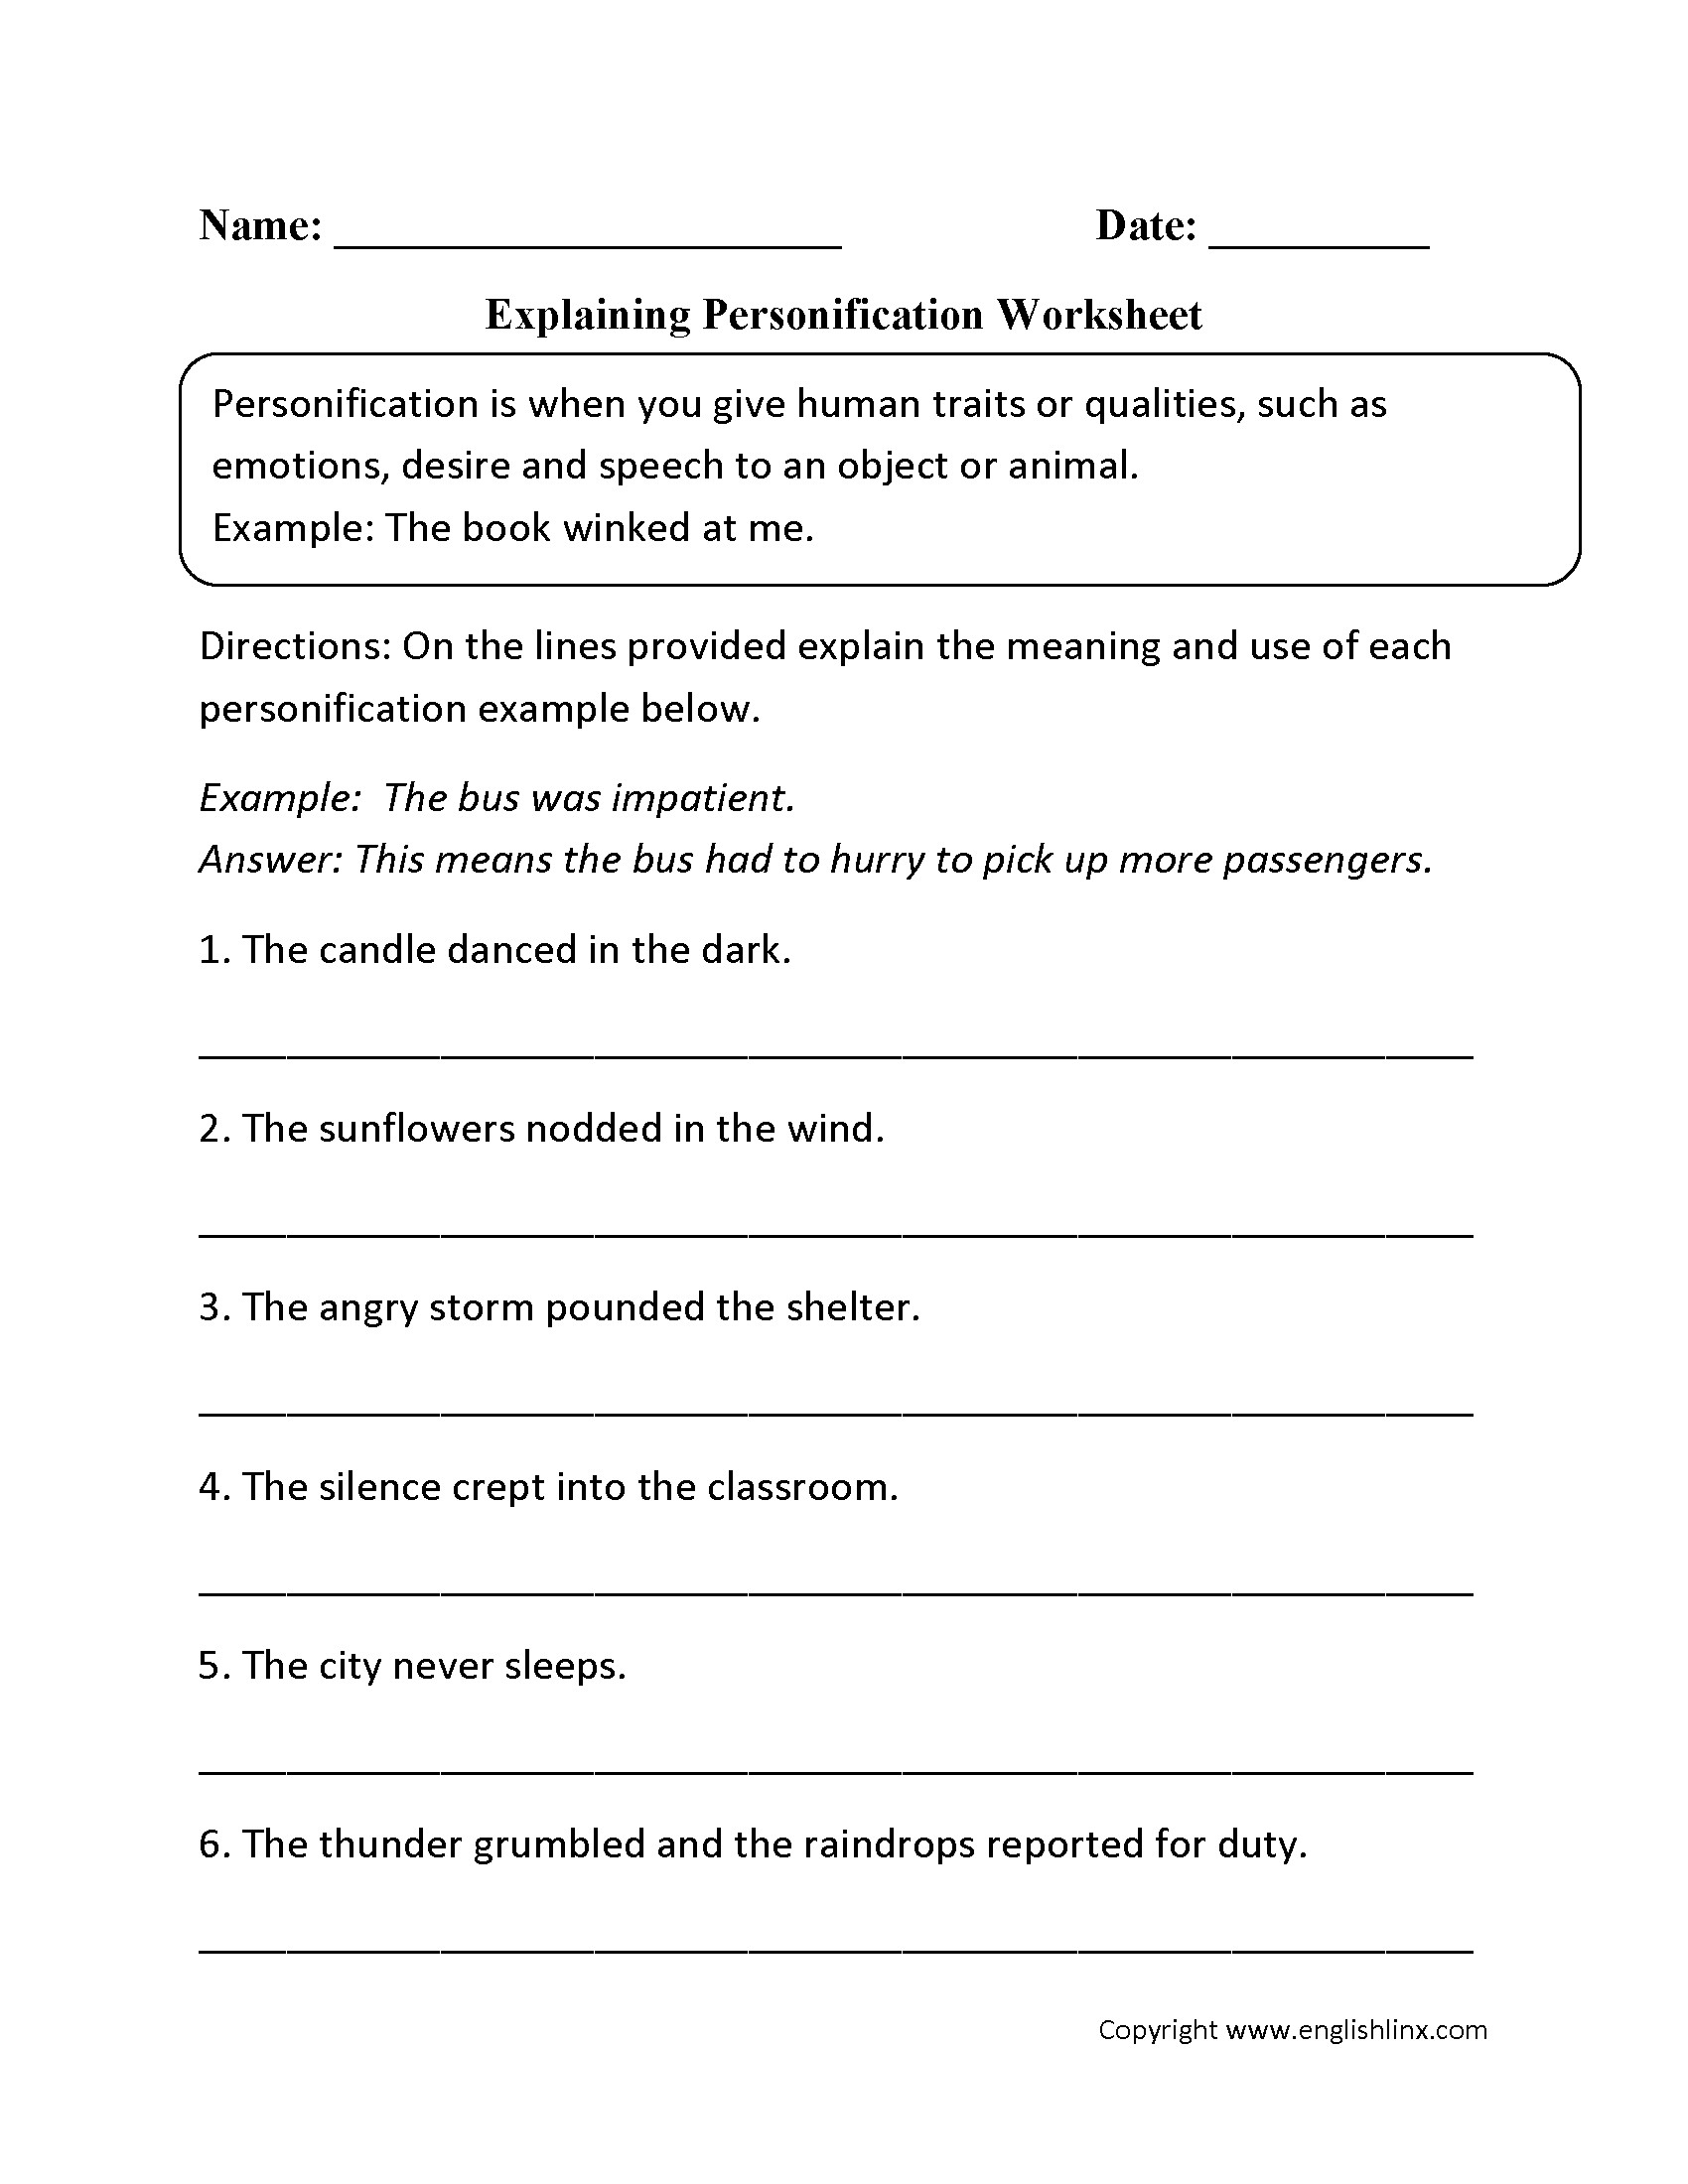 Personification Worksheets for Middle School Personification Worksheet